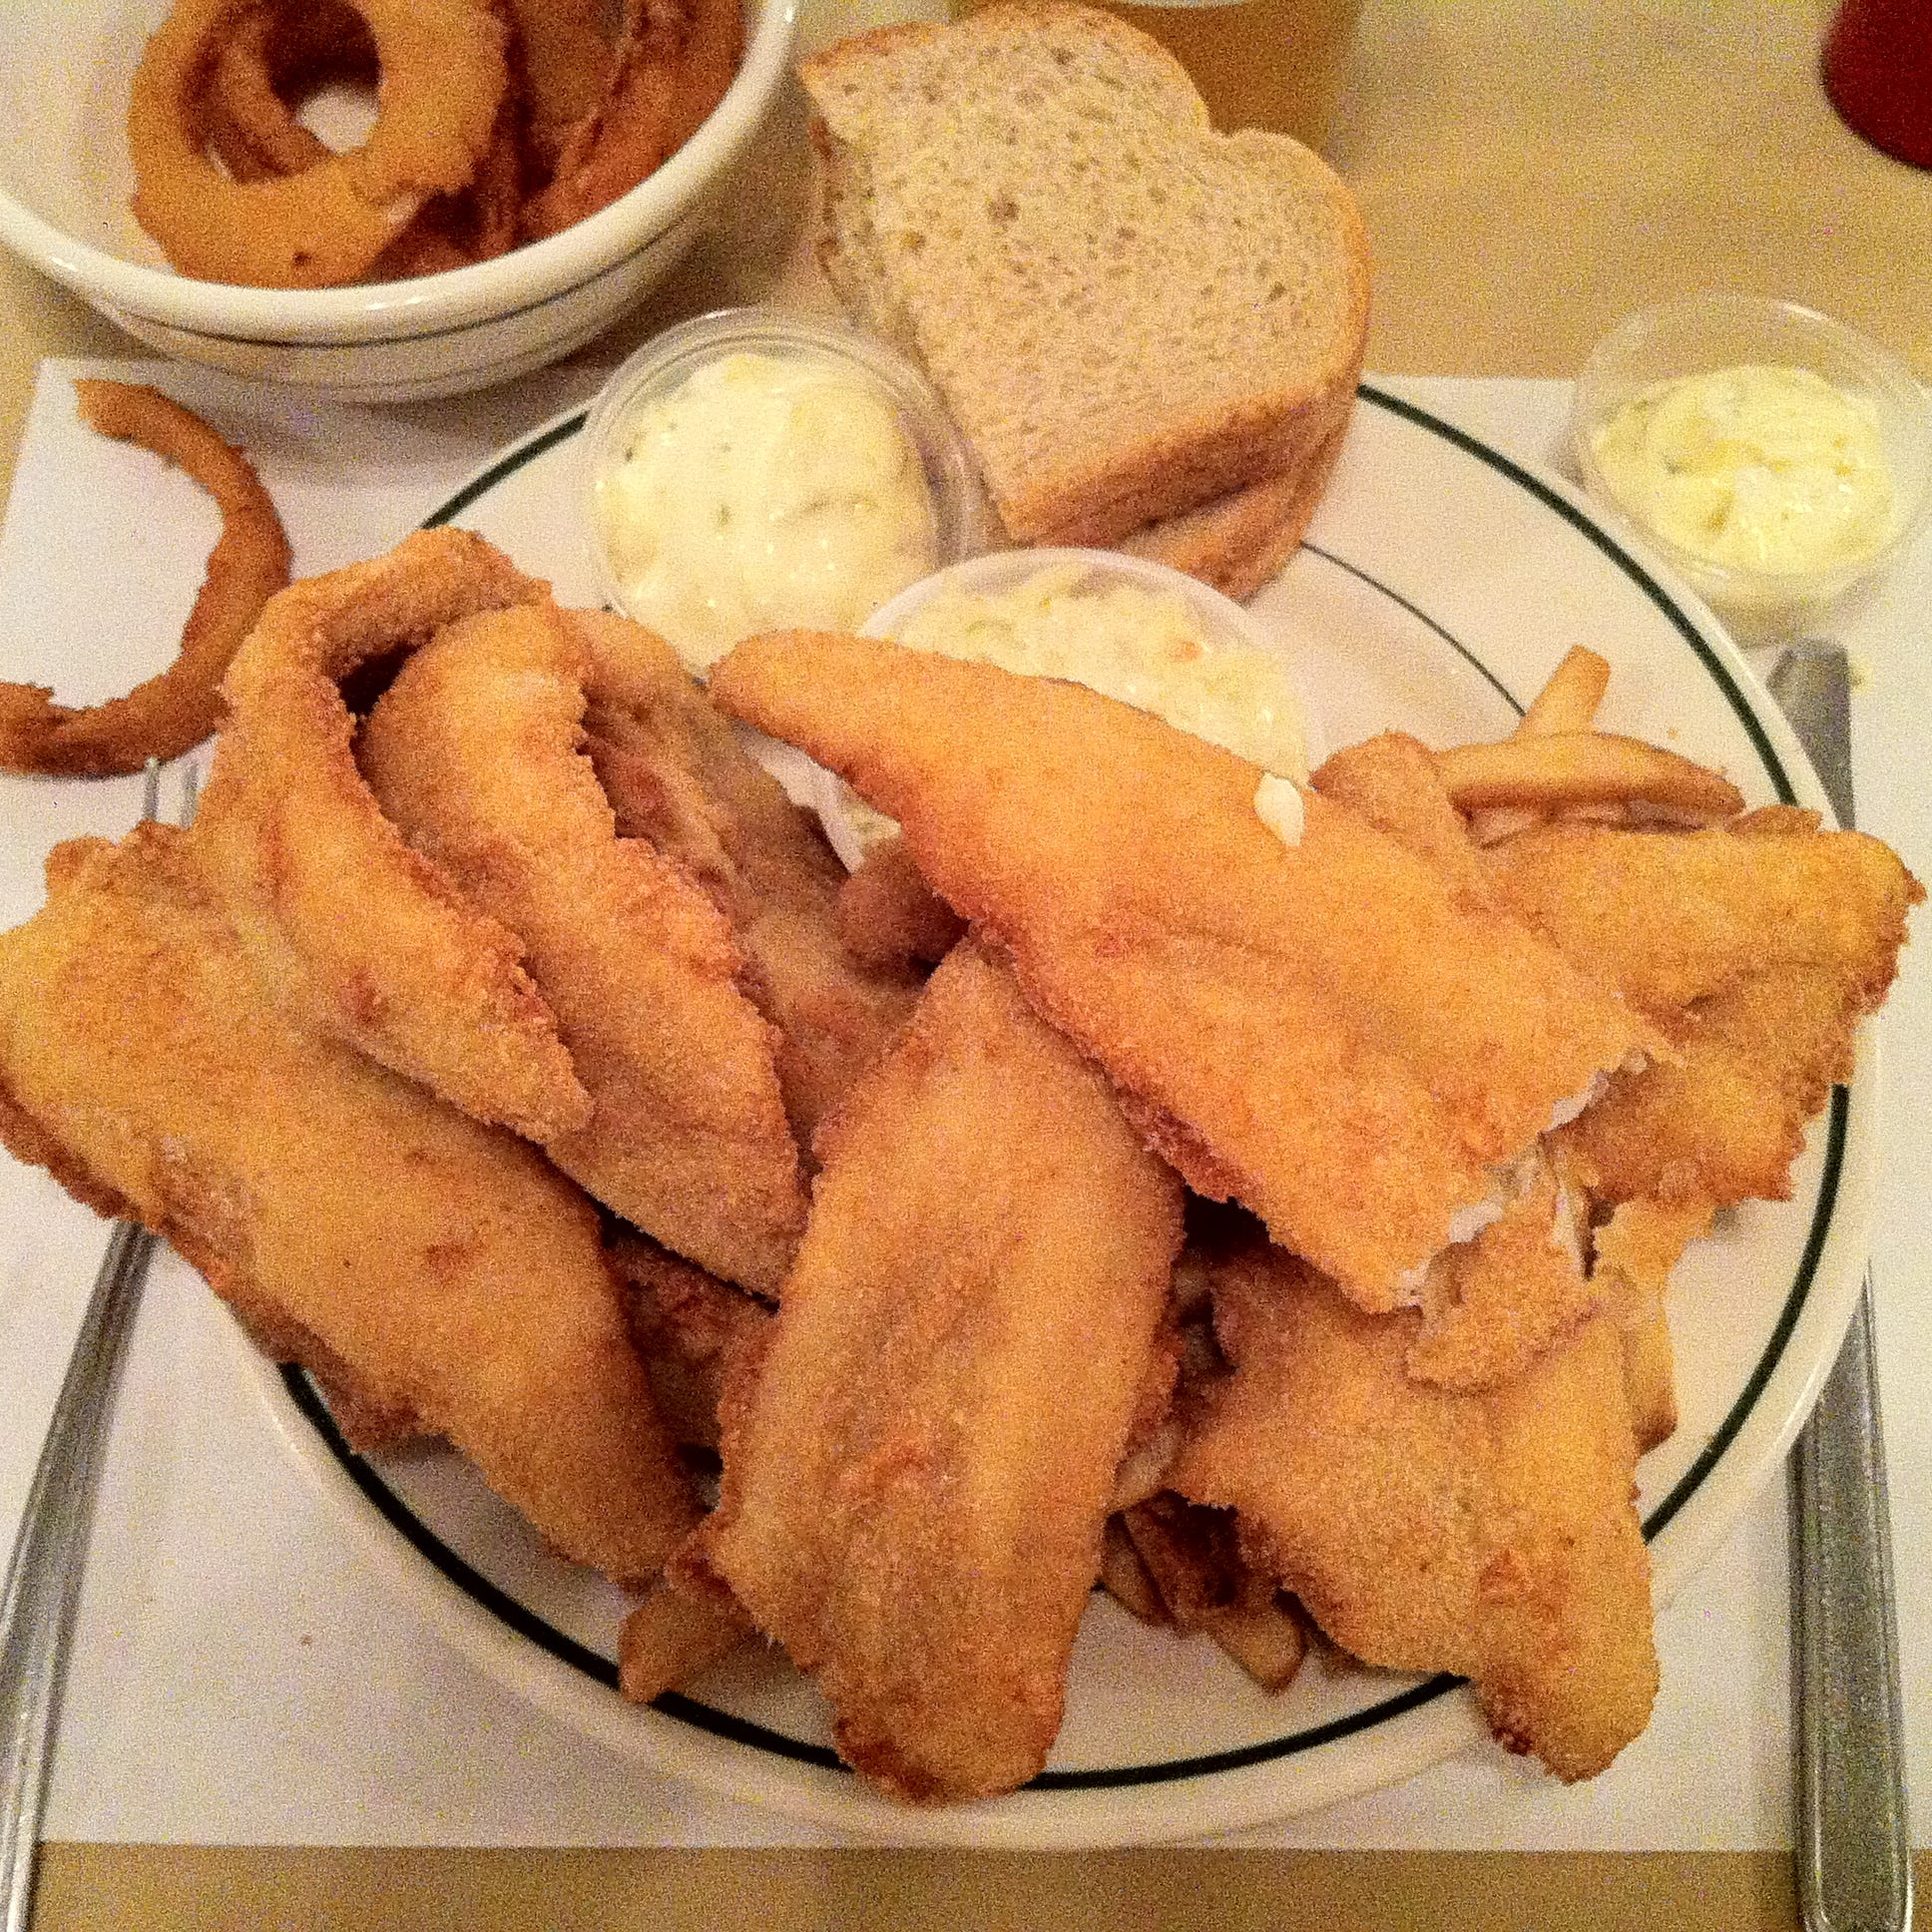 The Buzz: What's your choice for best fish fry?